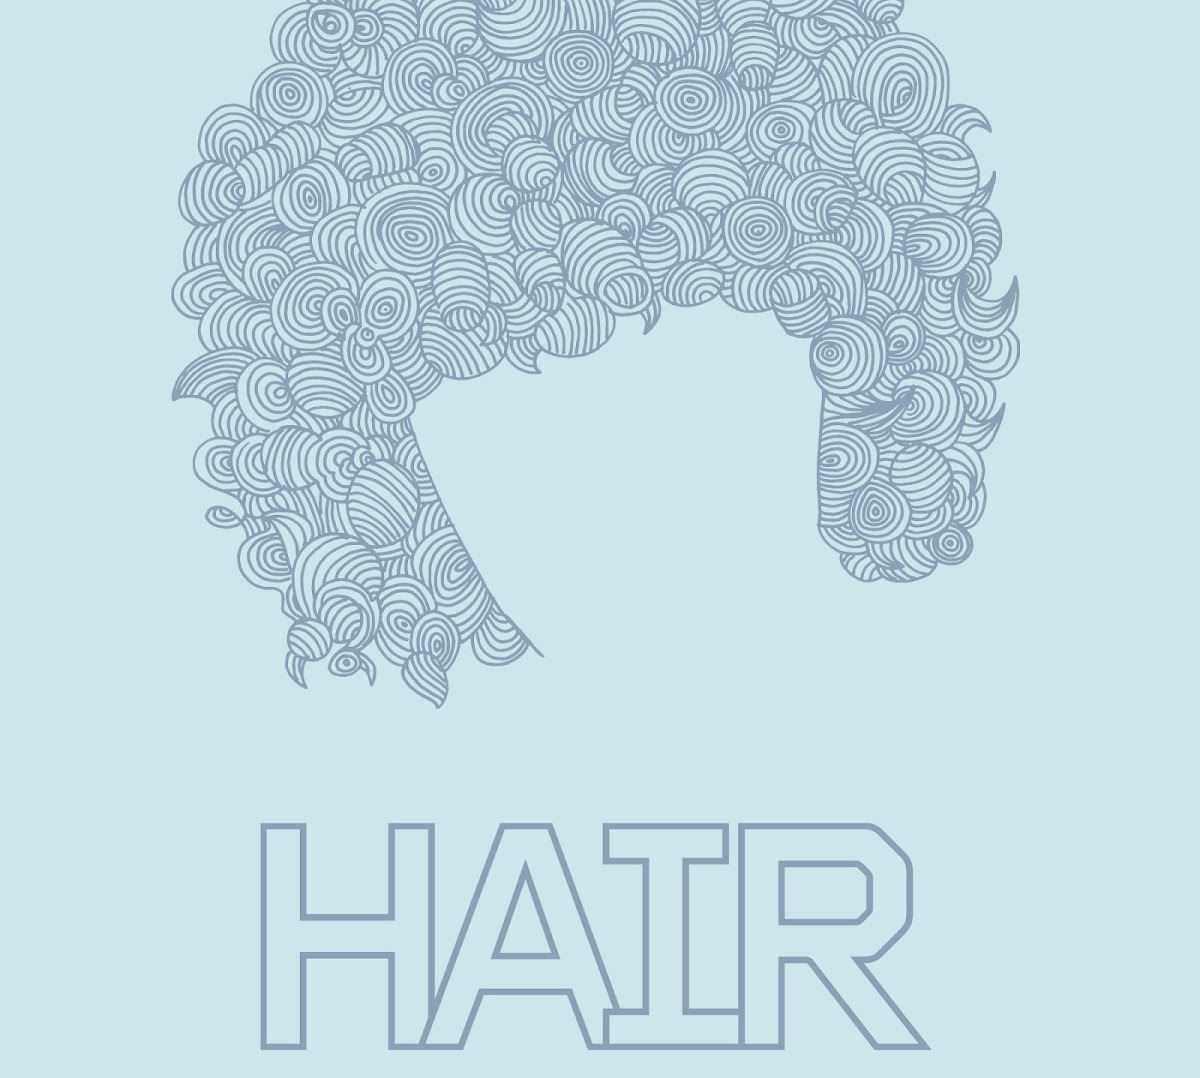 Illustration of Hair and text logo